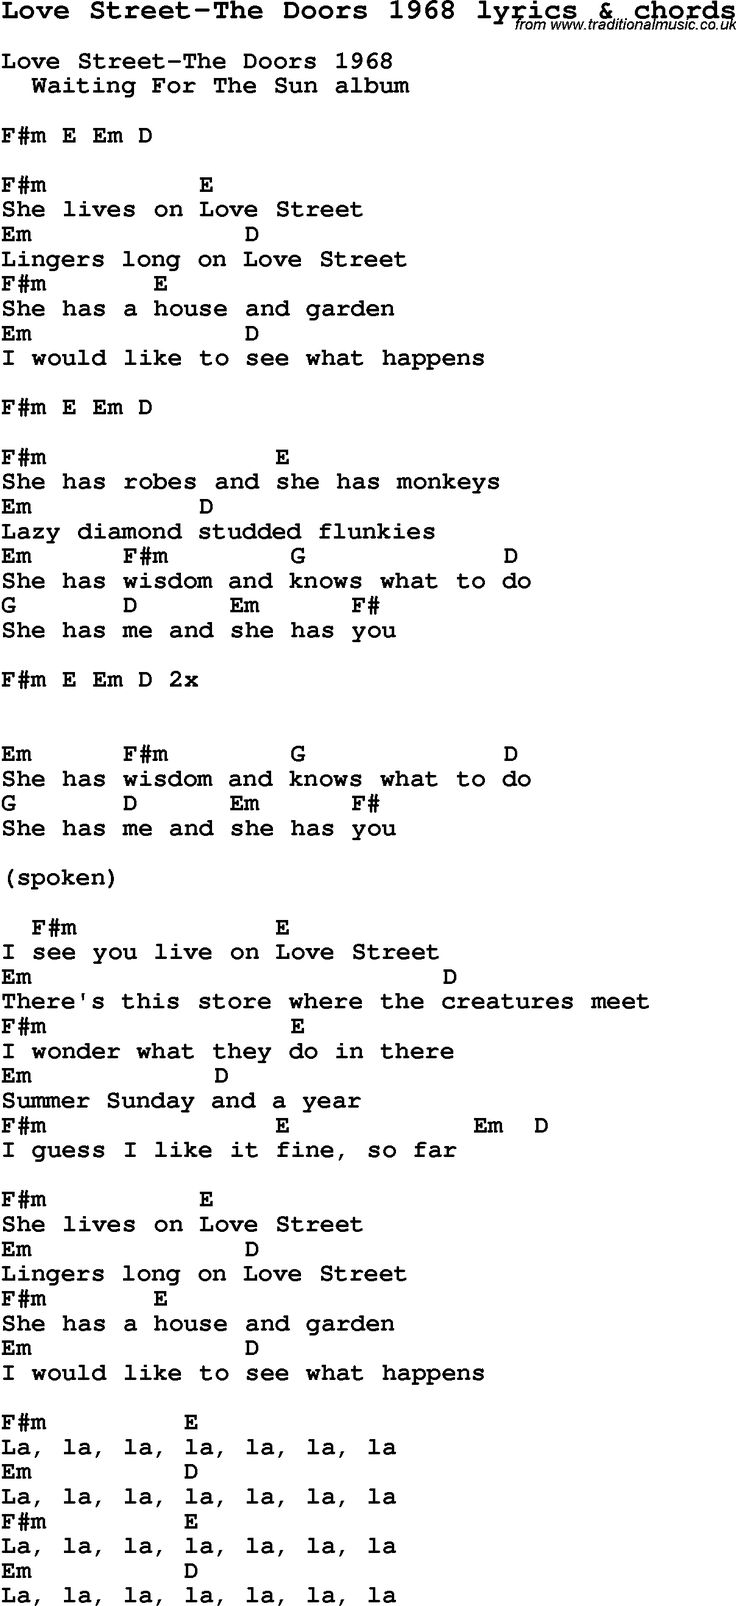 867 best rock images on pinterest artists live and liverpool love song love street the doors 1968 with chords and lyrics for ukulele guitar banjo and other instruments hexwebz Images